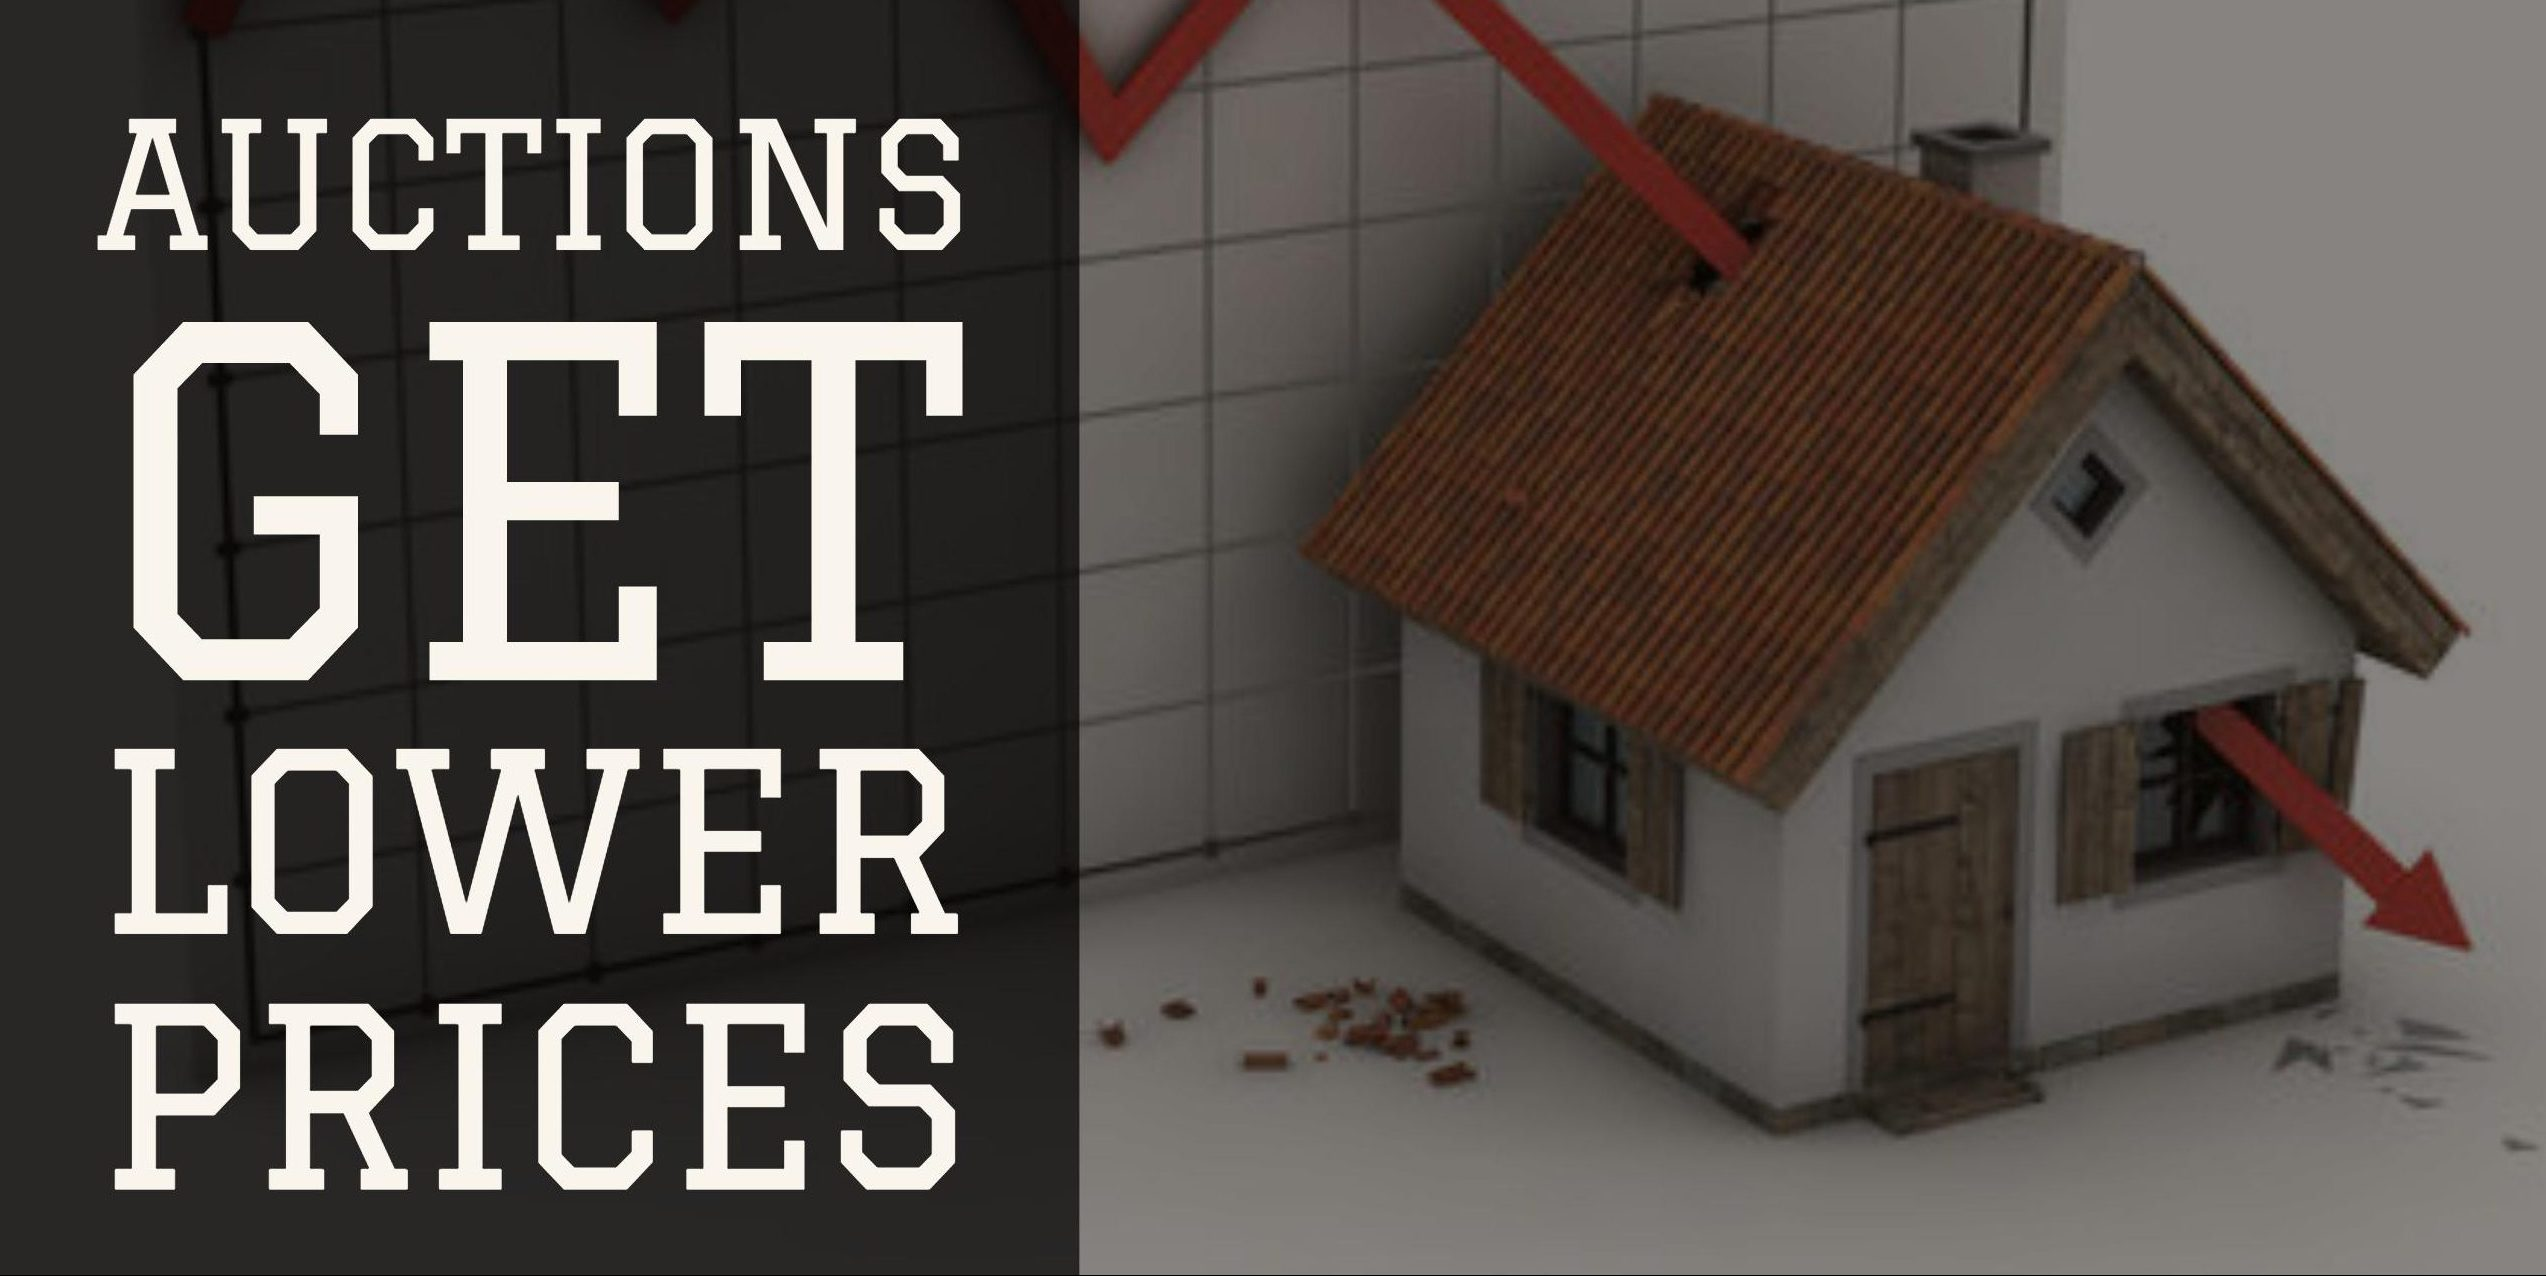 9 Reasons Auctions Get Lower Prices